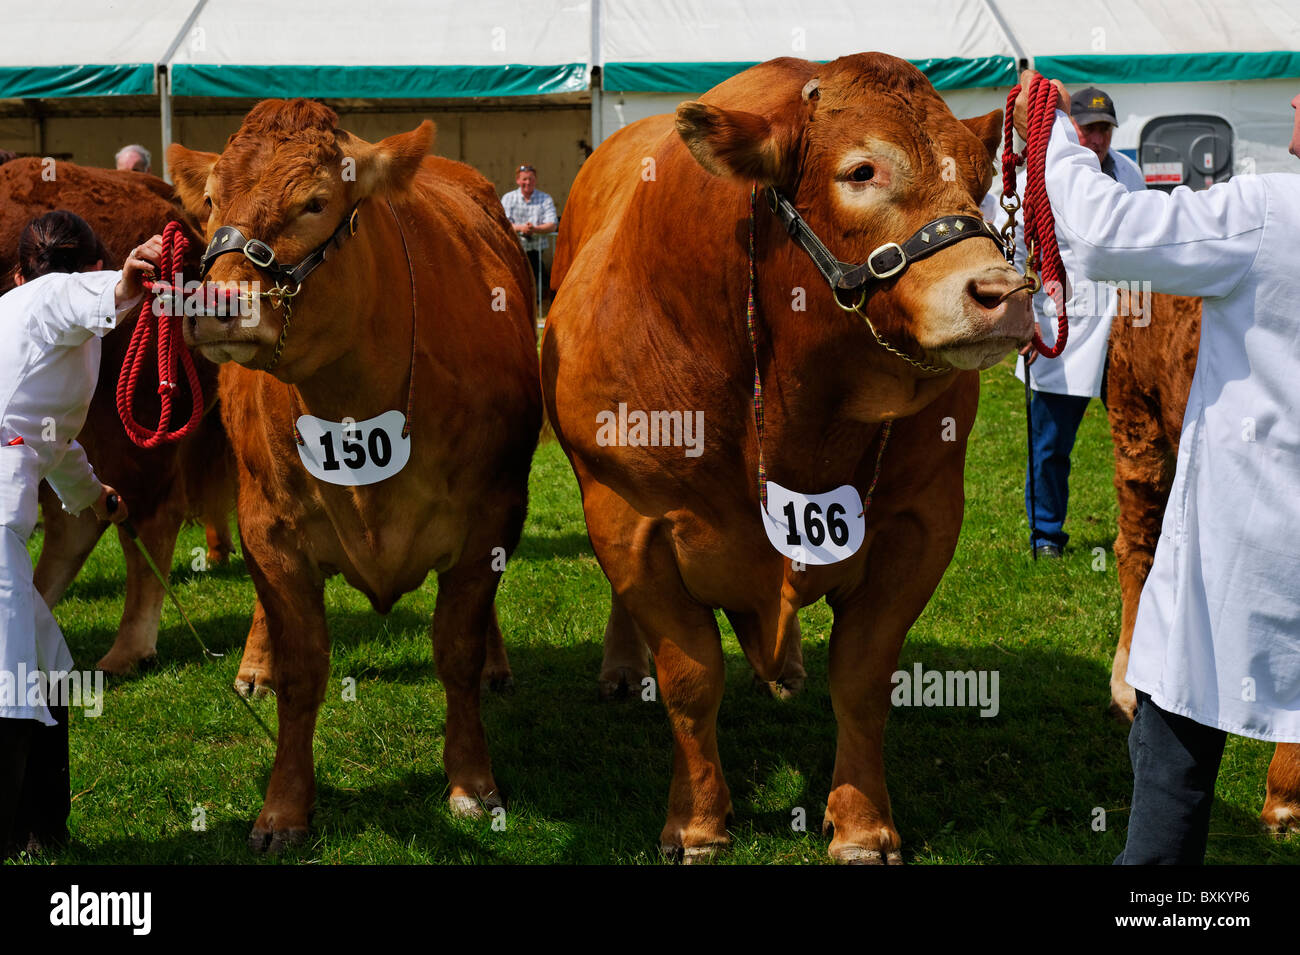 Livestock on display at the Northumberland County Show - Stock Image